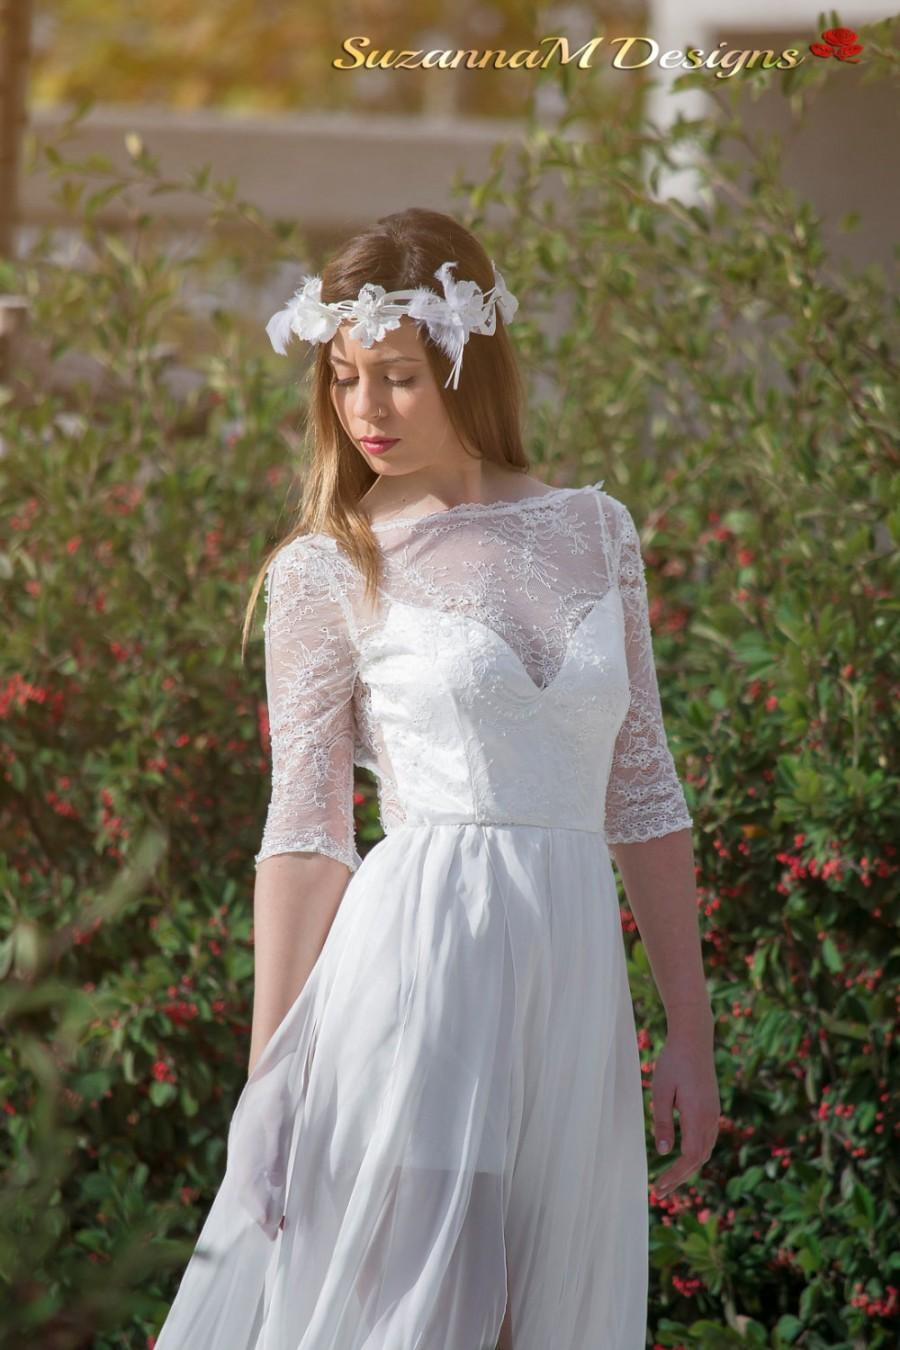 Wedding dress chantilly lace wedding dress airy silk chiffon wedding dress chantilly lace wedding dress airy silk chiffon bridal dress long wedding dress embroidered lace wedding gown suzannam designs ombrellifo Image collections